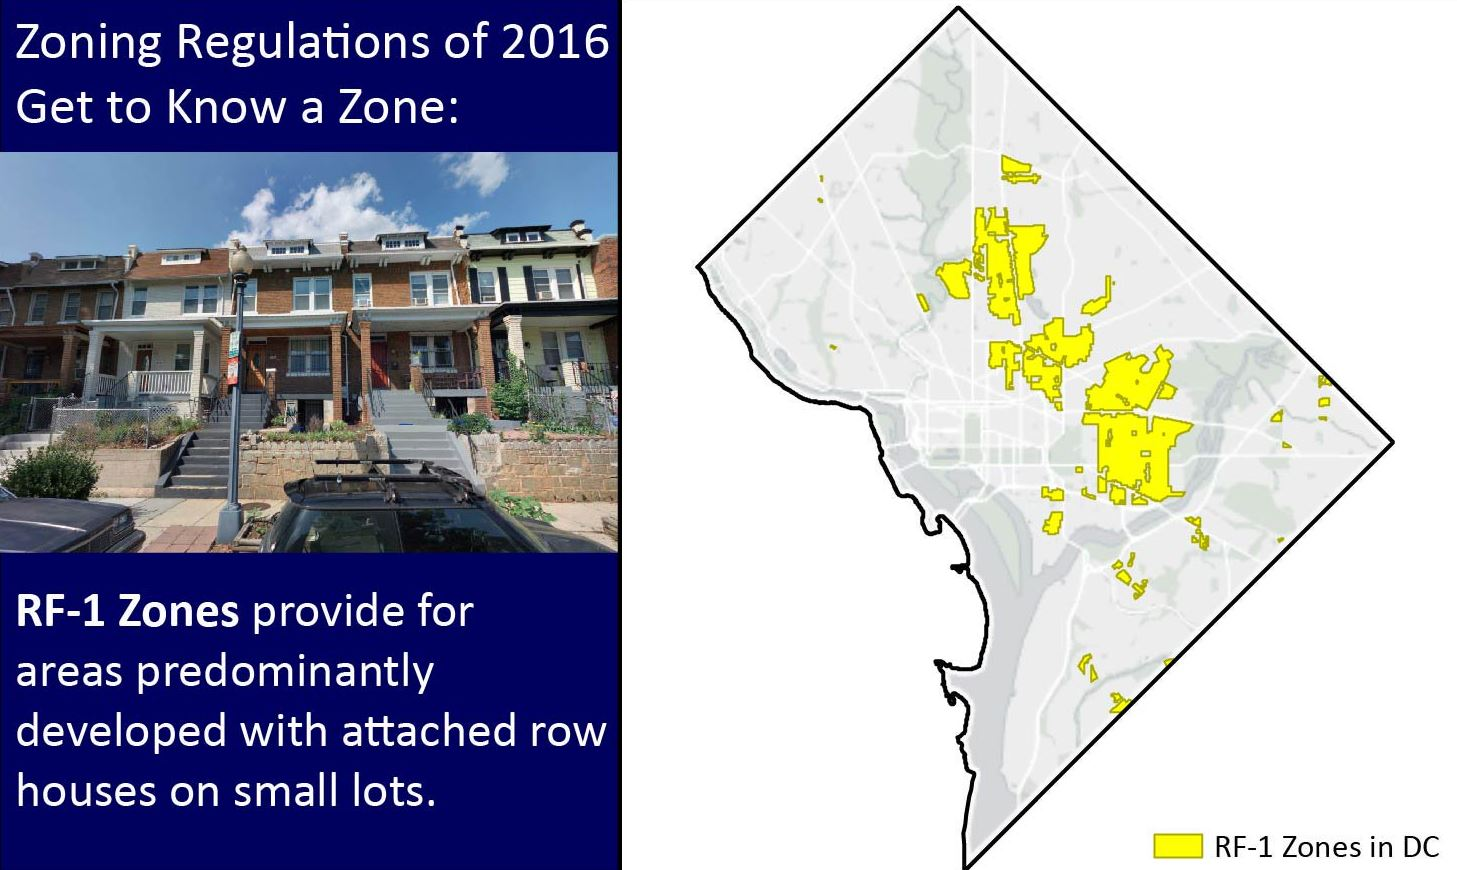 bloomingdale: new DC zoning regulations: RF-1 zone (formerly R-4) on